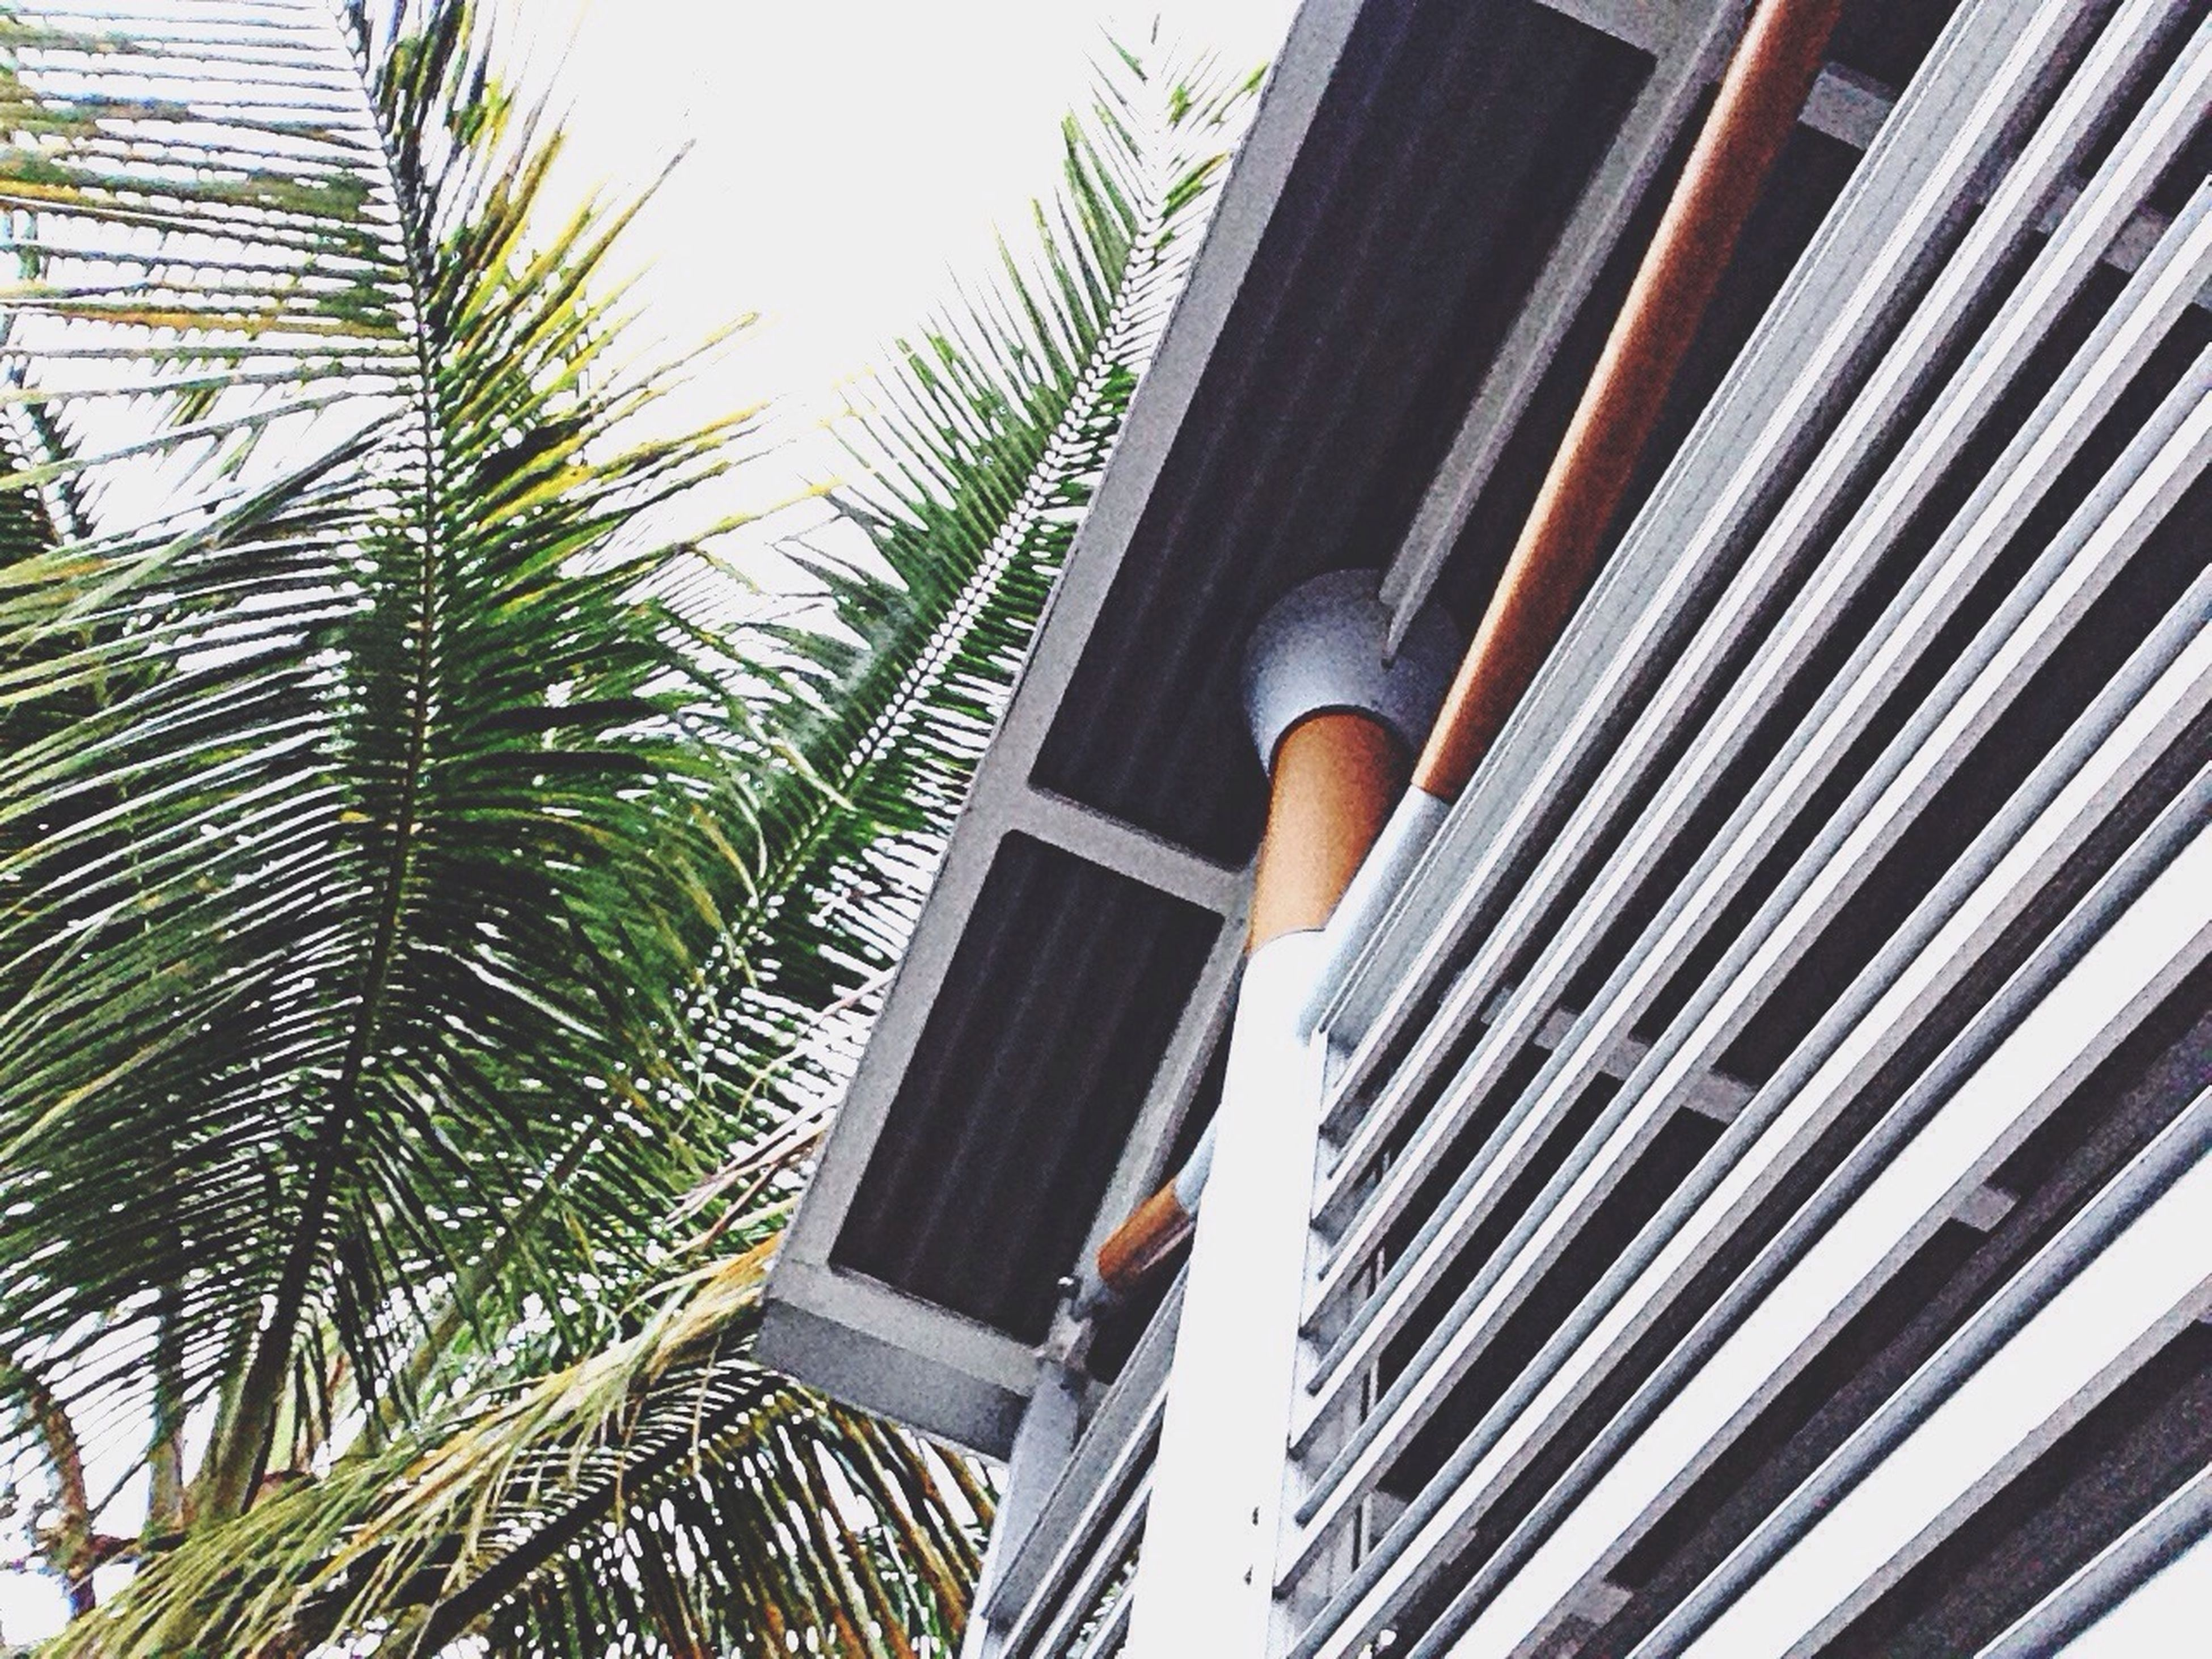 low angle view, palm tree, tree, clear sky, growth, built structure, day, architecture, building exterior, outdoors, palm leaf, railing, nature, sunlight, sky, steps, leisure activity, plant